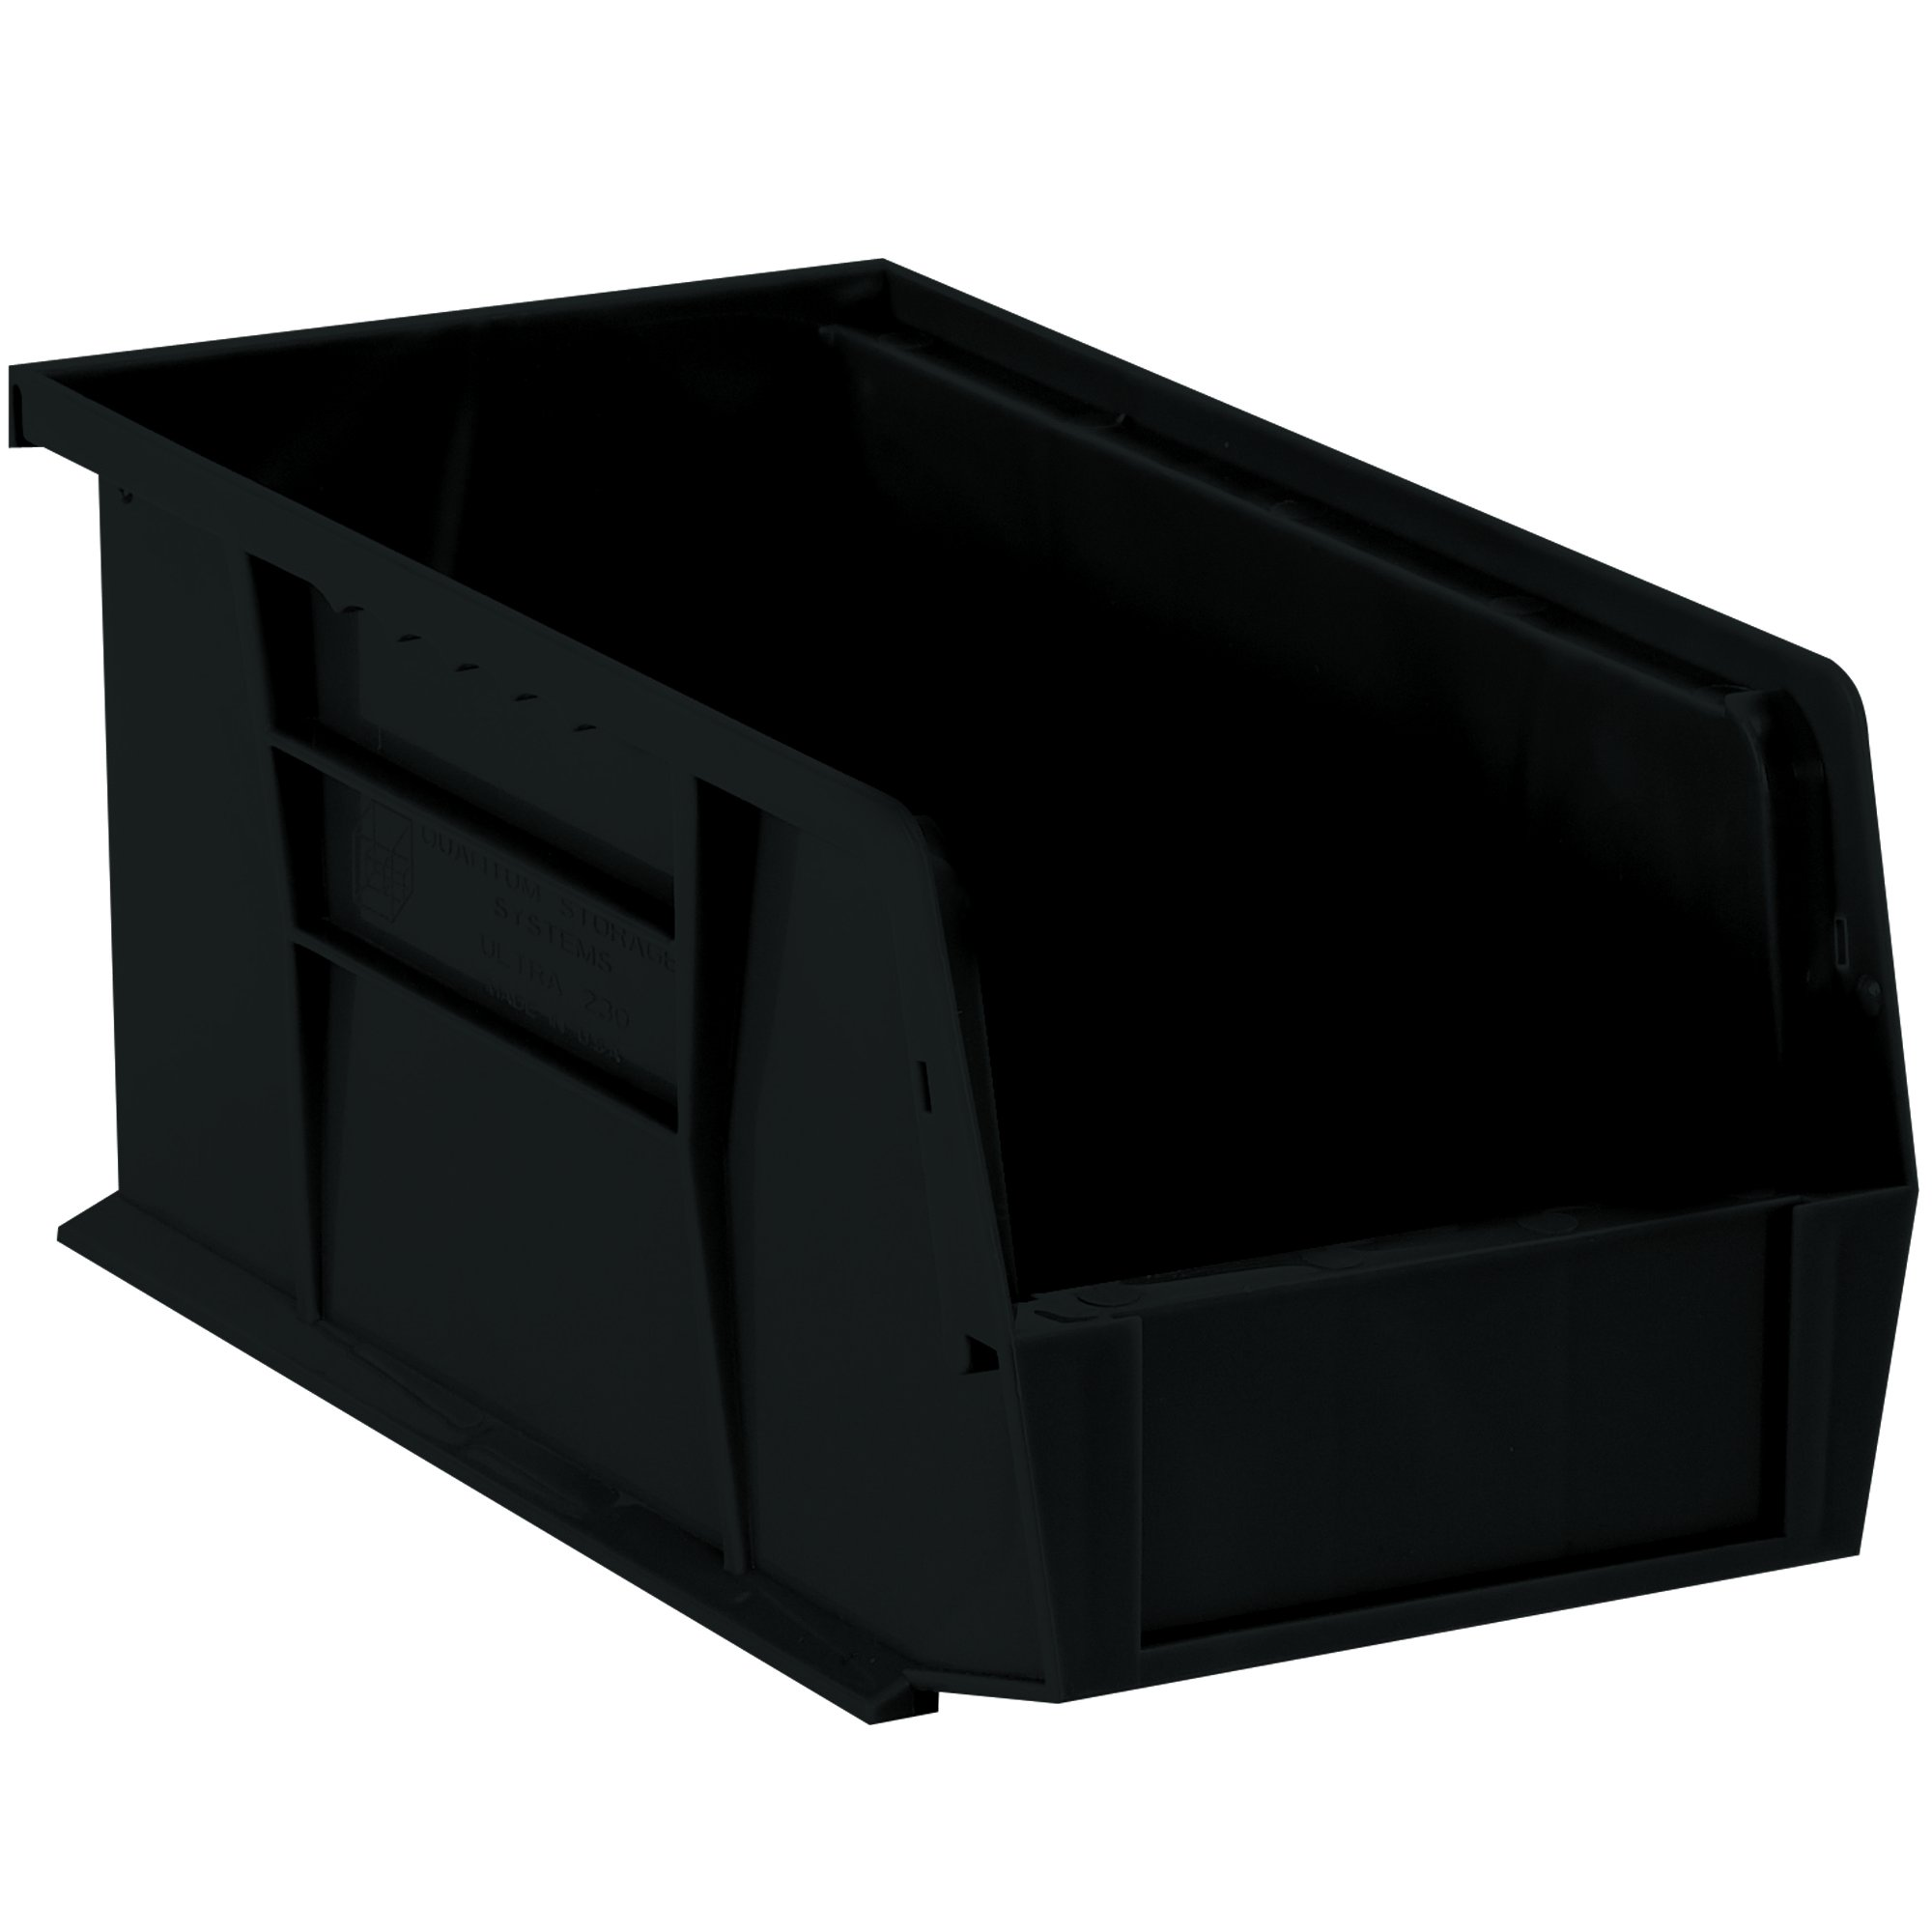 Aviditi BINP1487K Plastic Stack and Hang Bin Boxes, 14 3/4'' x 8 1/4'' x 7'', Black (Pack of 12)